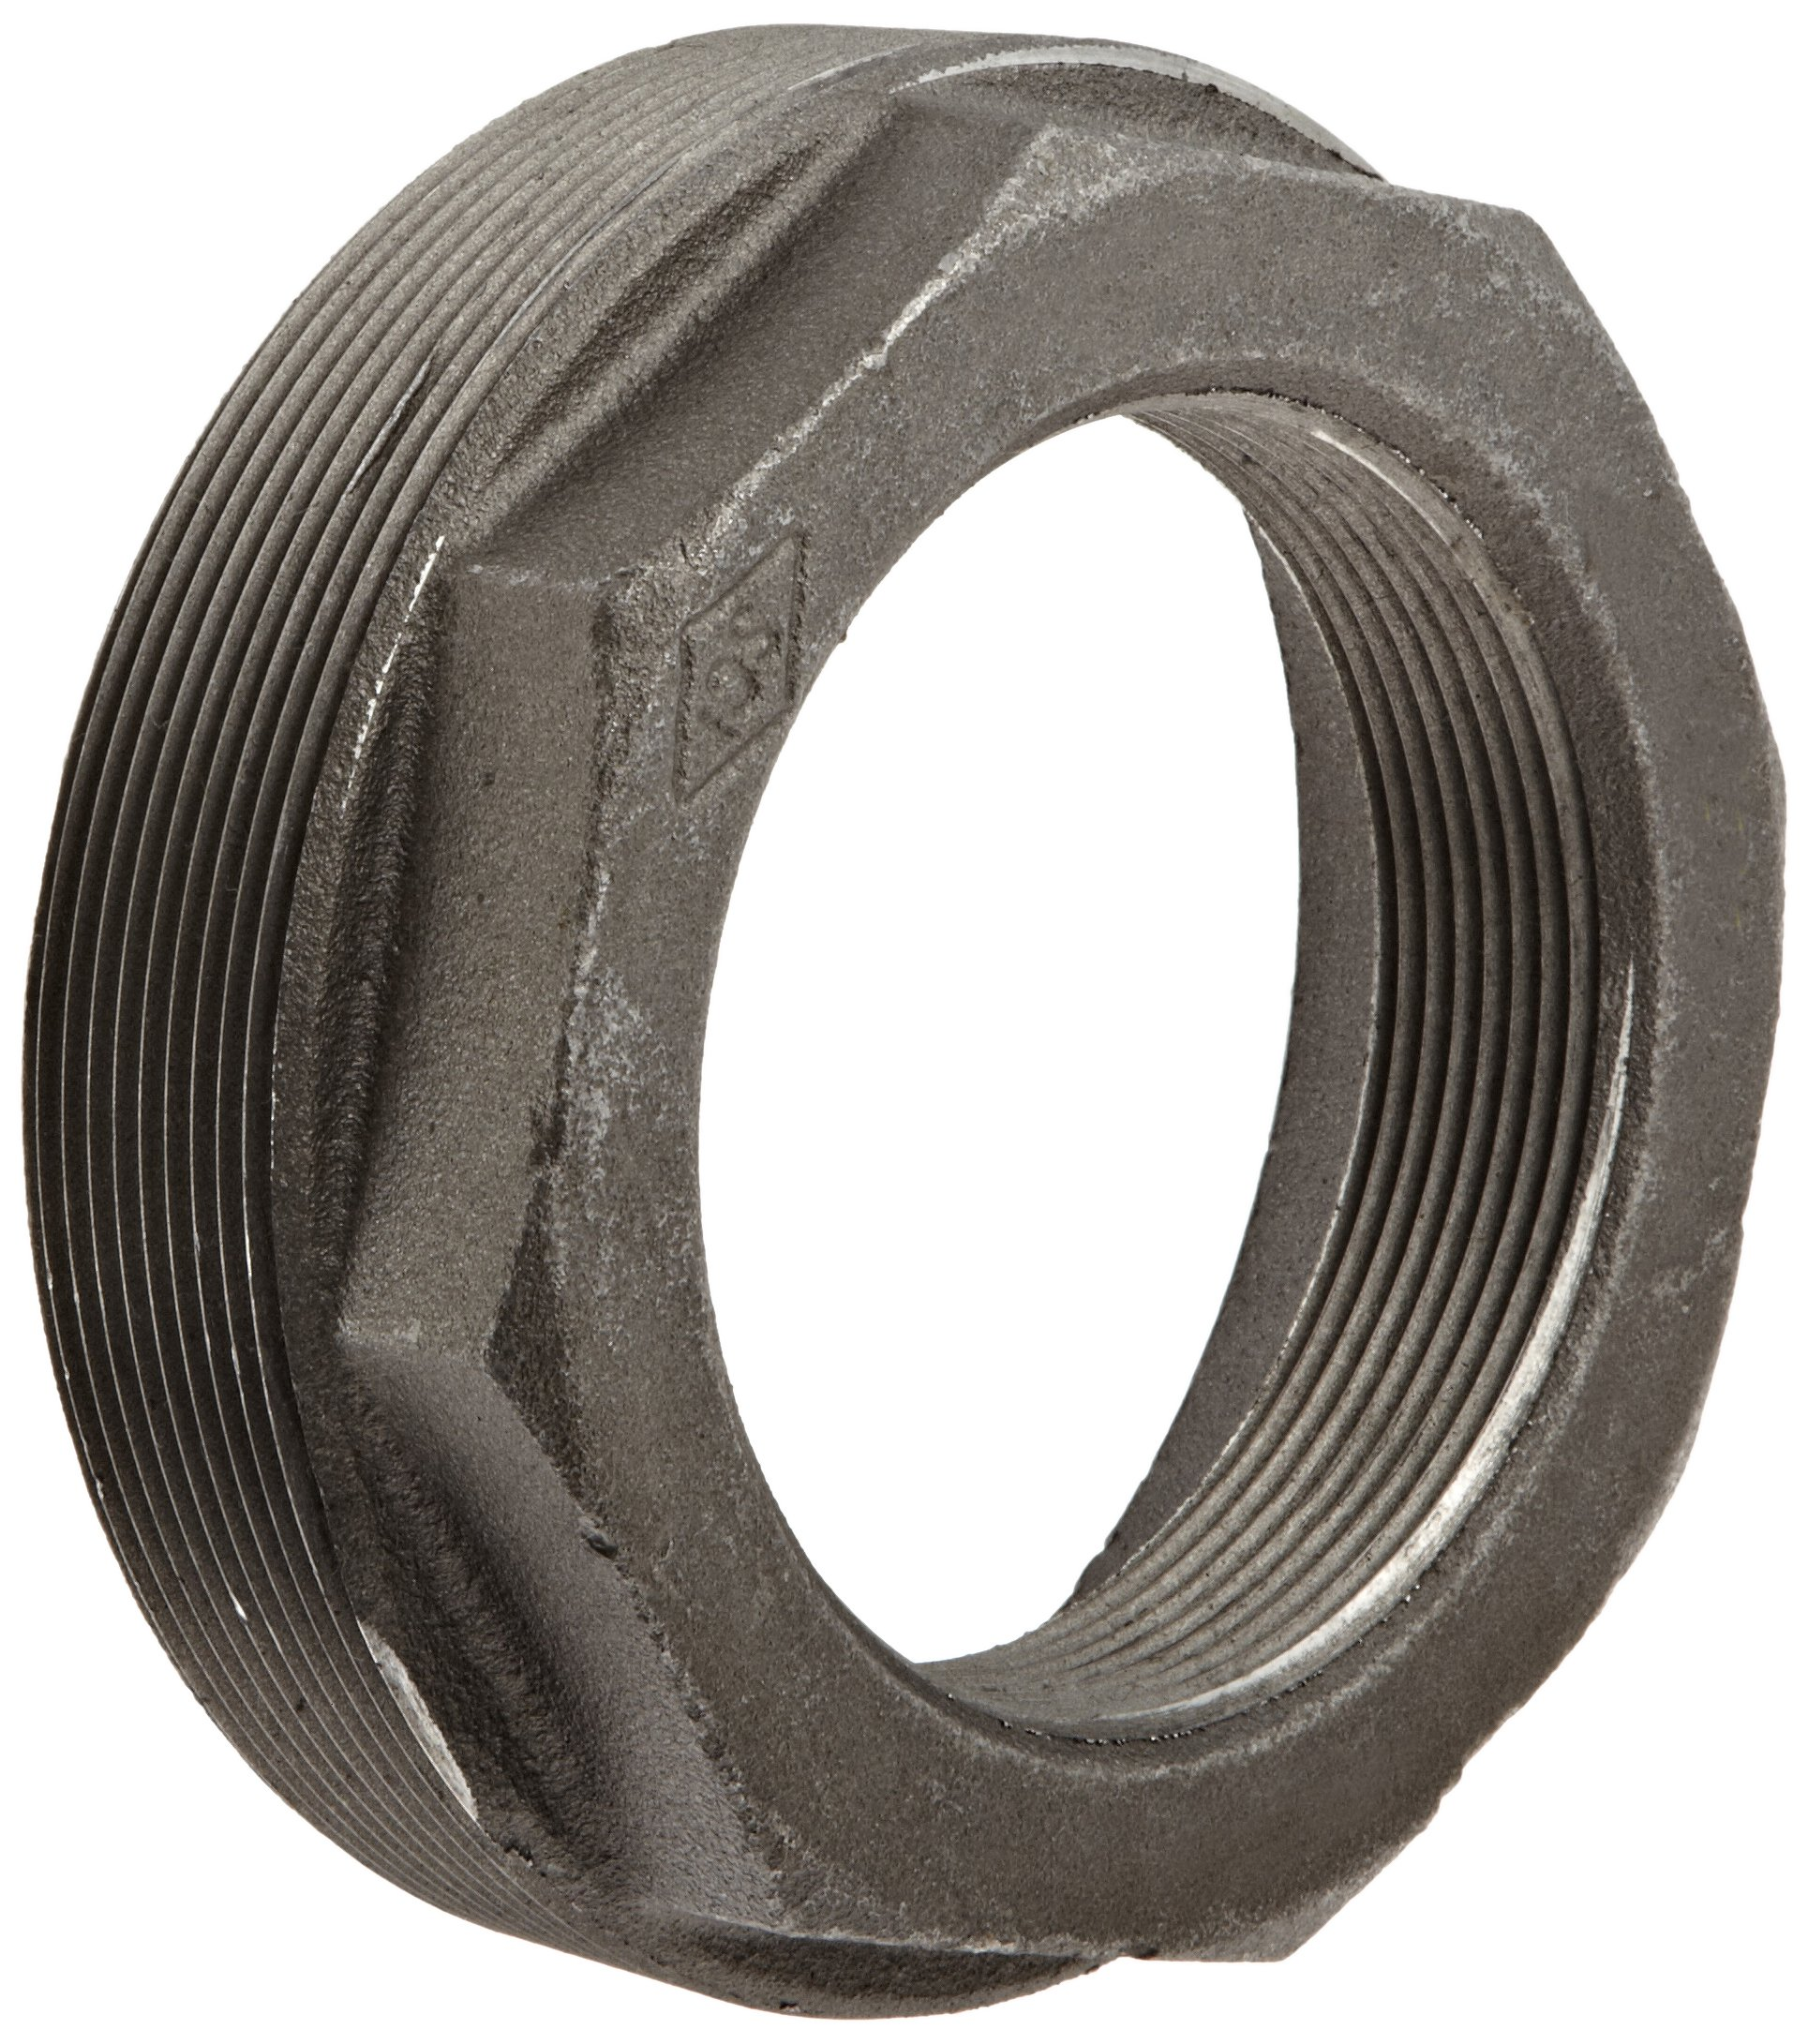 Dixon  HB3020 Iron 150# Pipe and Welding Fitting, Reducer Hex Bushing, 3'' NPT Male x 2'' NPT Female